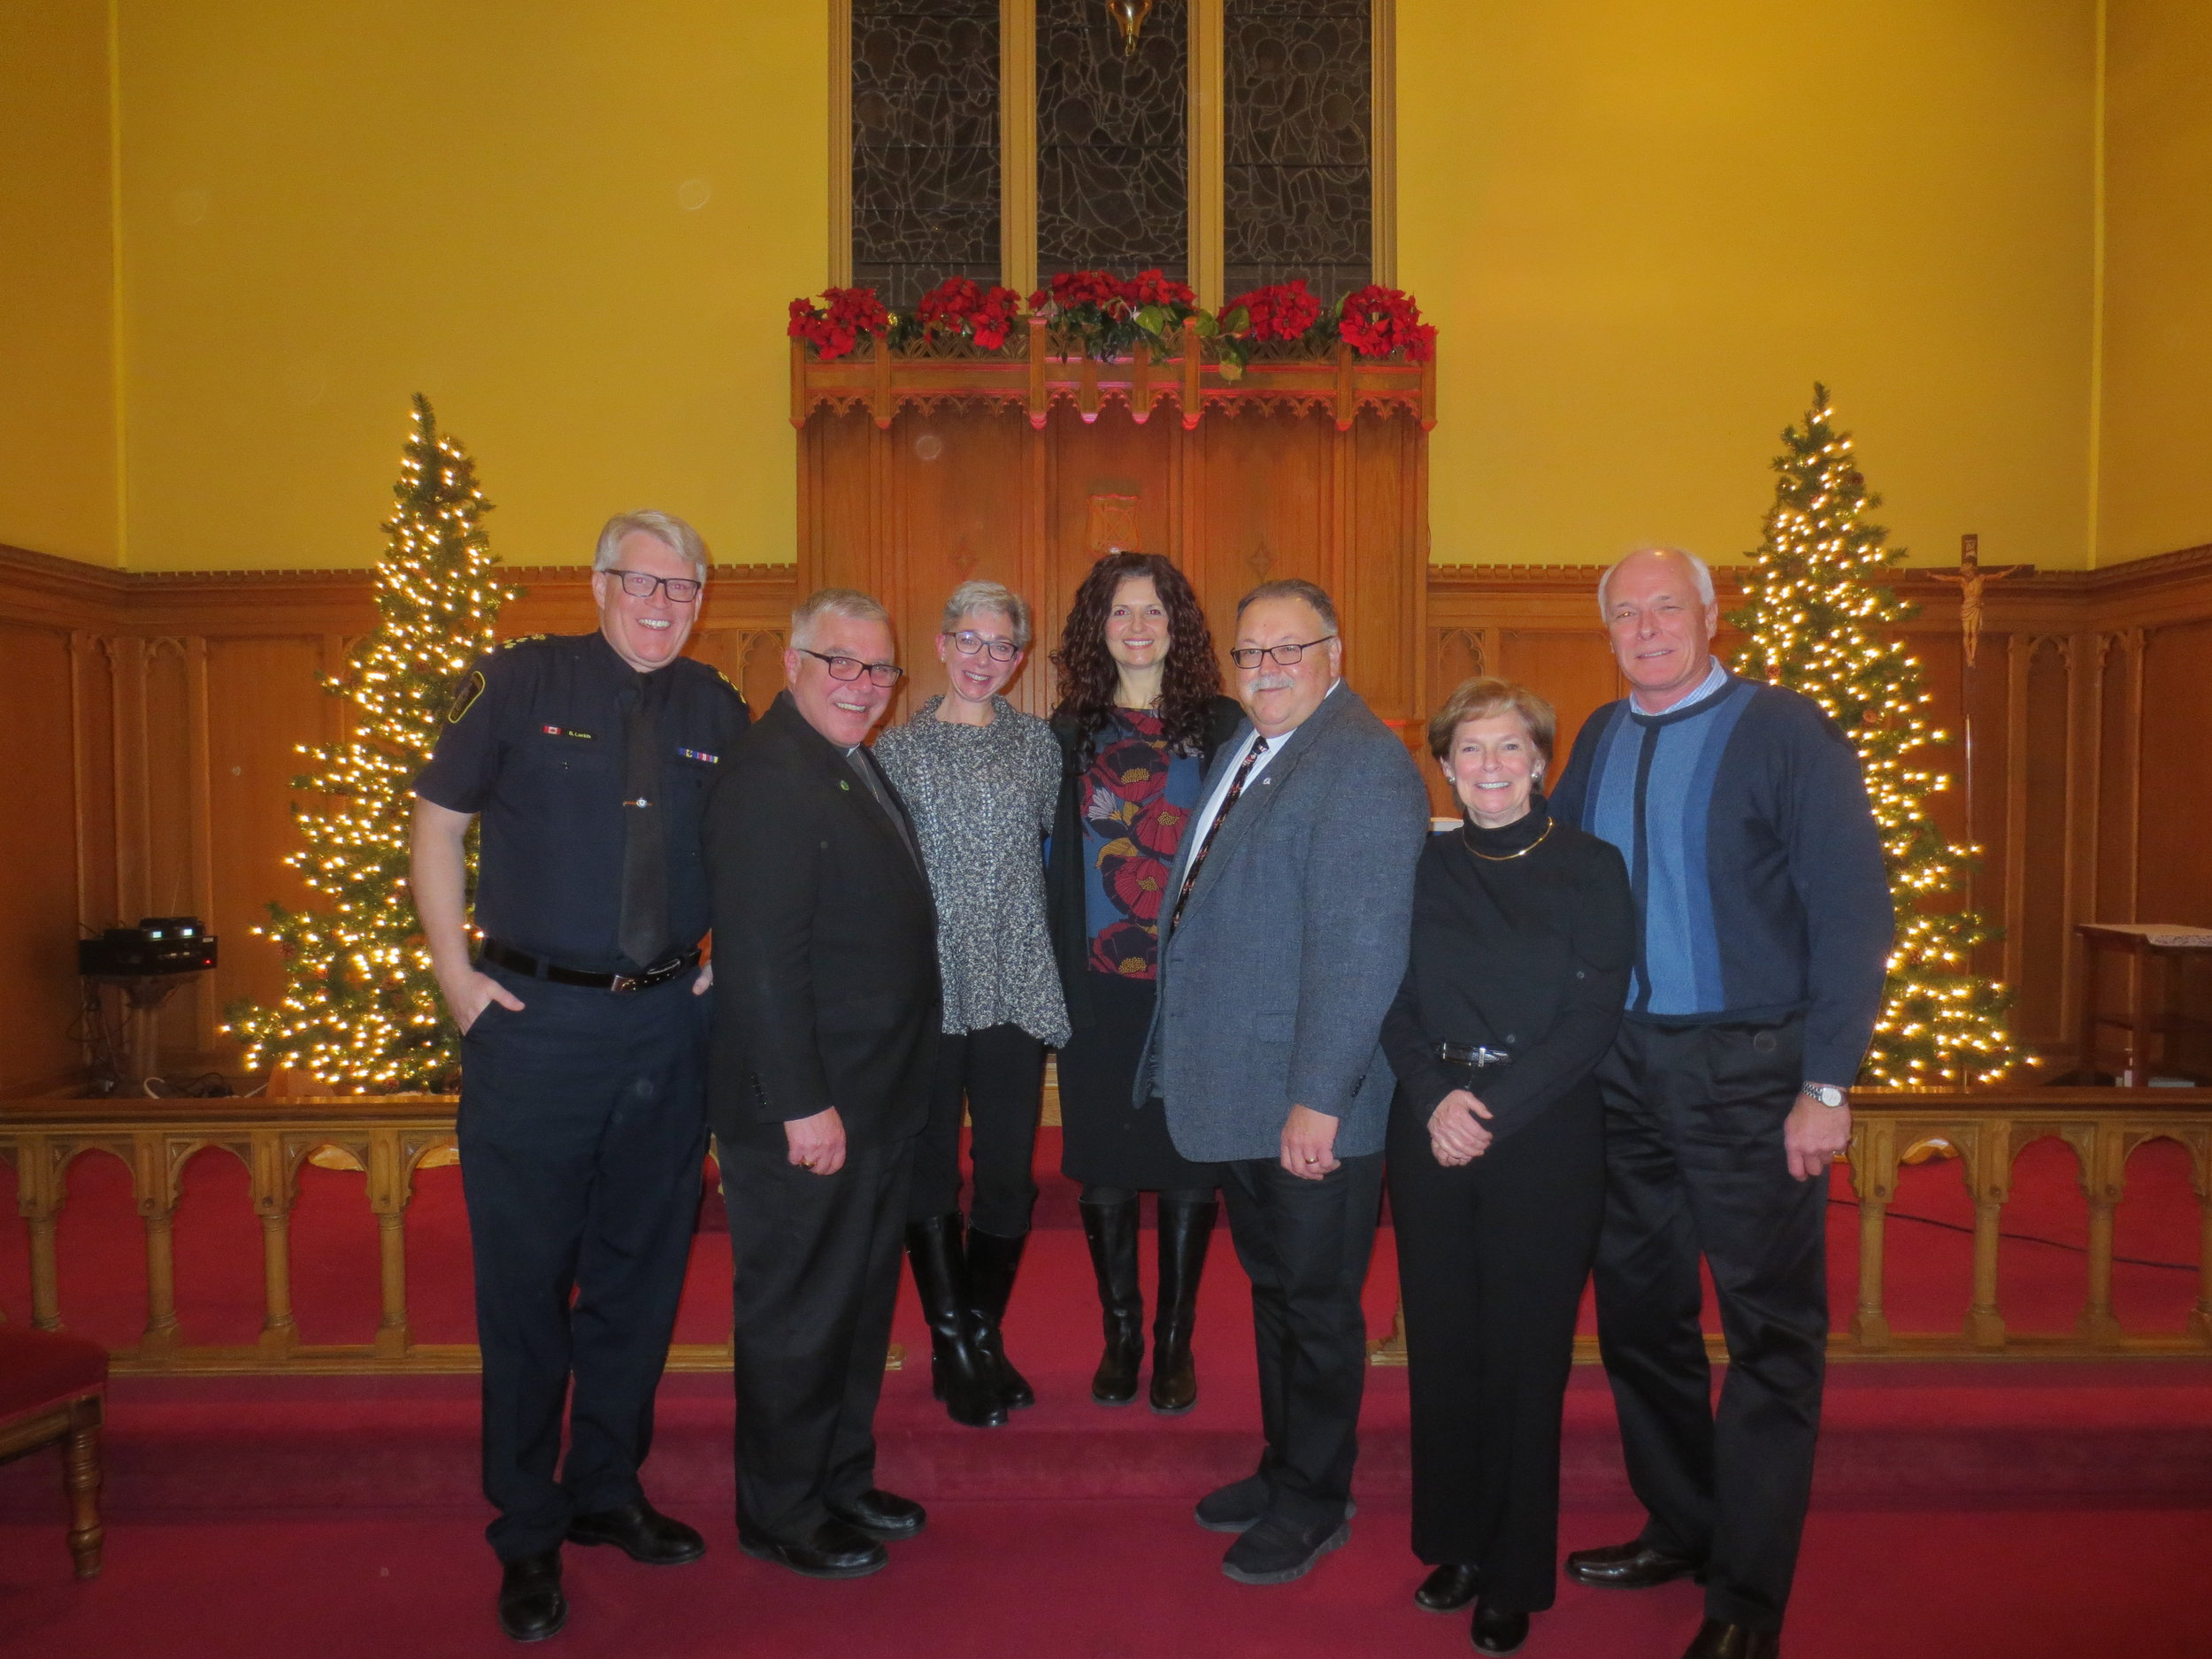 Our Annual Dramatic Reading of Charles Dickens' 'A Christmas Carol' took place Friday, December 7, 2018. Featured readers and Master of Ceremonies L to R. Chief Bryan Larkin, Bishop Michael J. Pryse, Kimberly Strassburger, Eugenia Schatz, Karl Kiefer (past MC), Hon. Karen Redman, and Councillor Mike Mann.